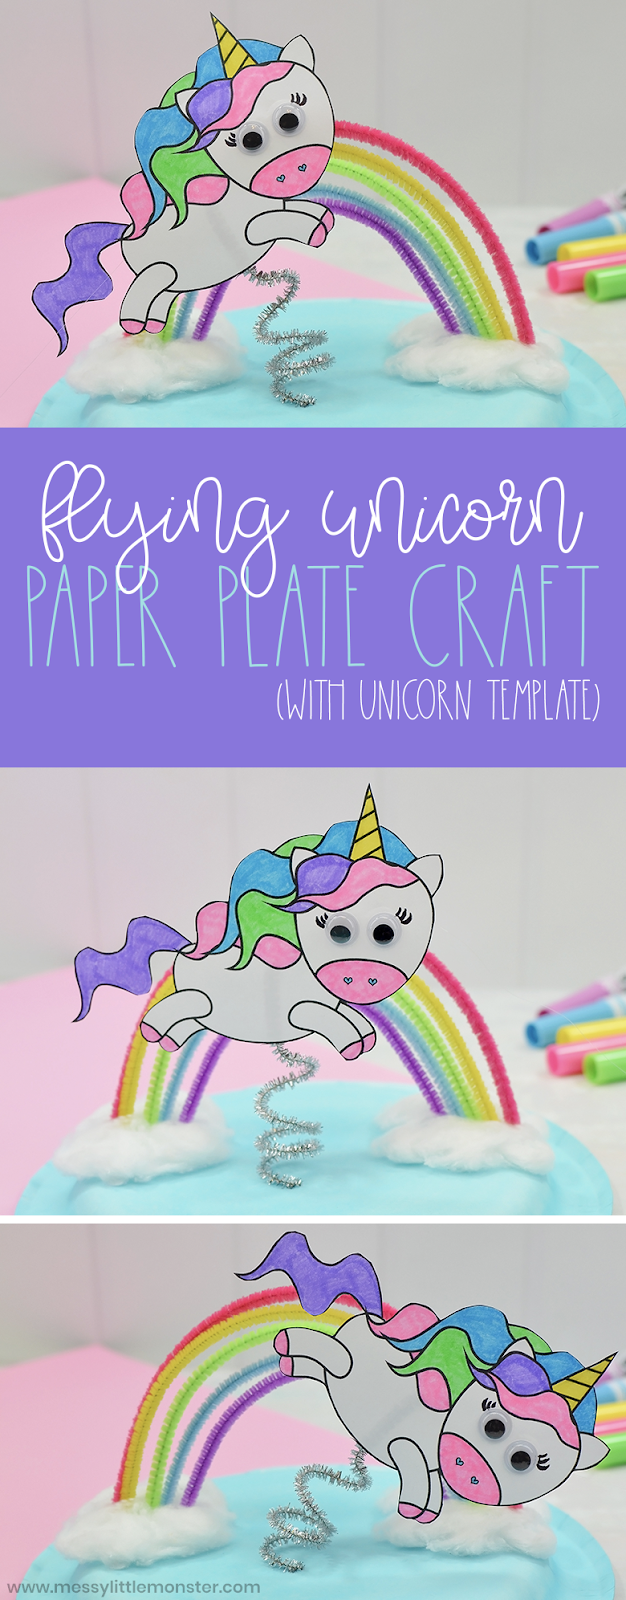 Flying unicorn paper plate craft - printable unicorn template included. Unicorn craft for preschoolers.